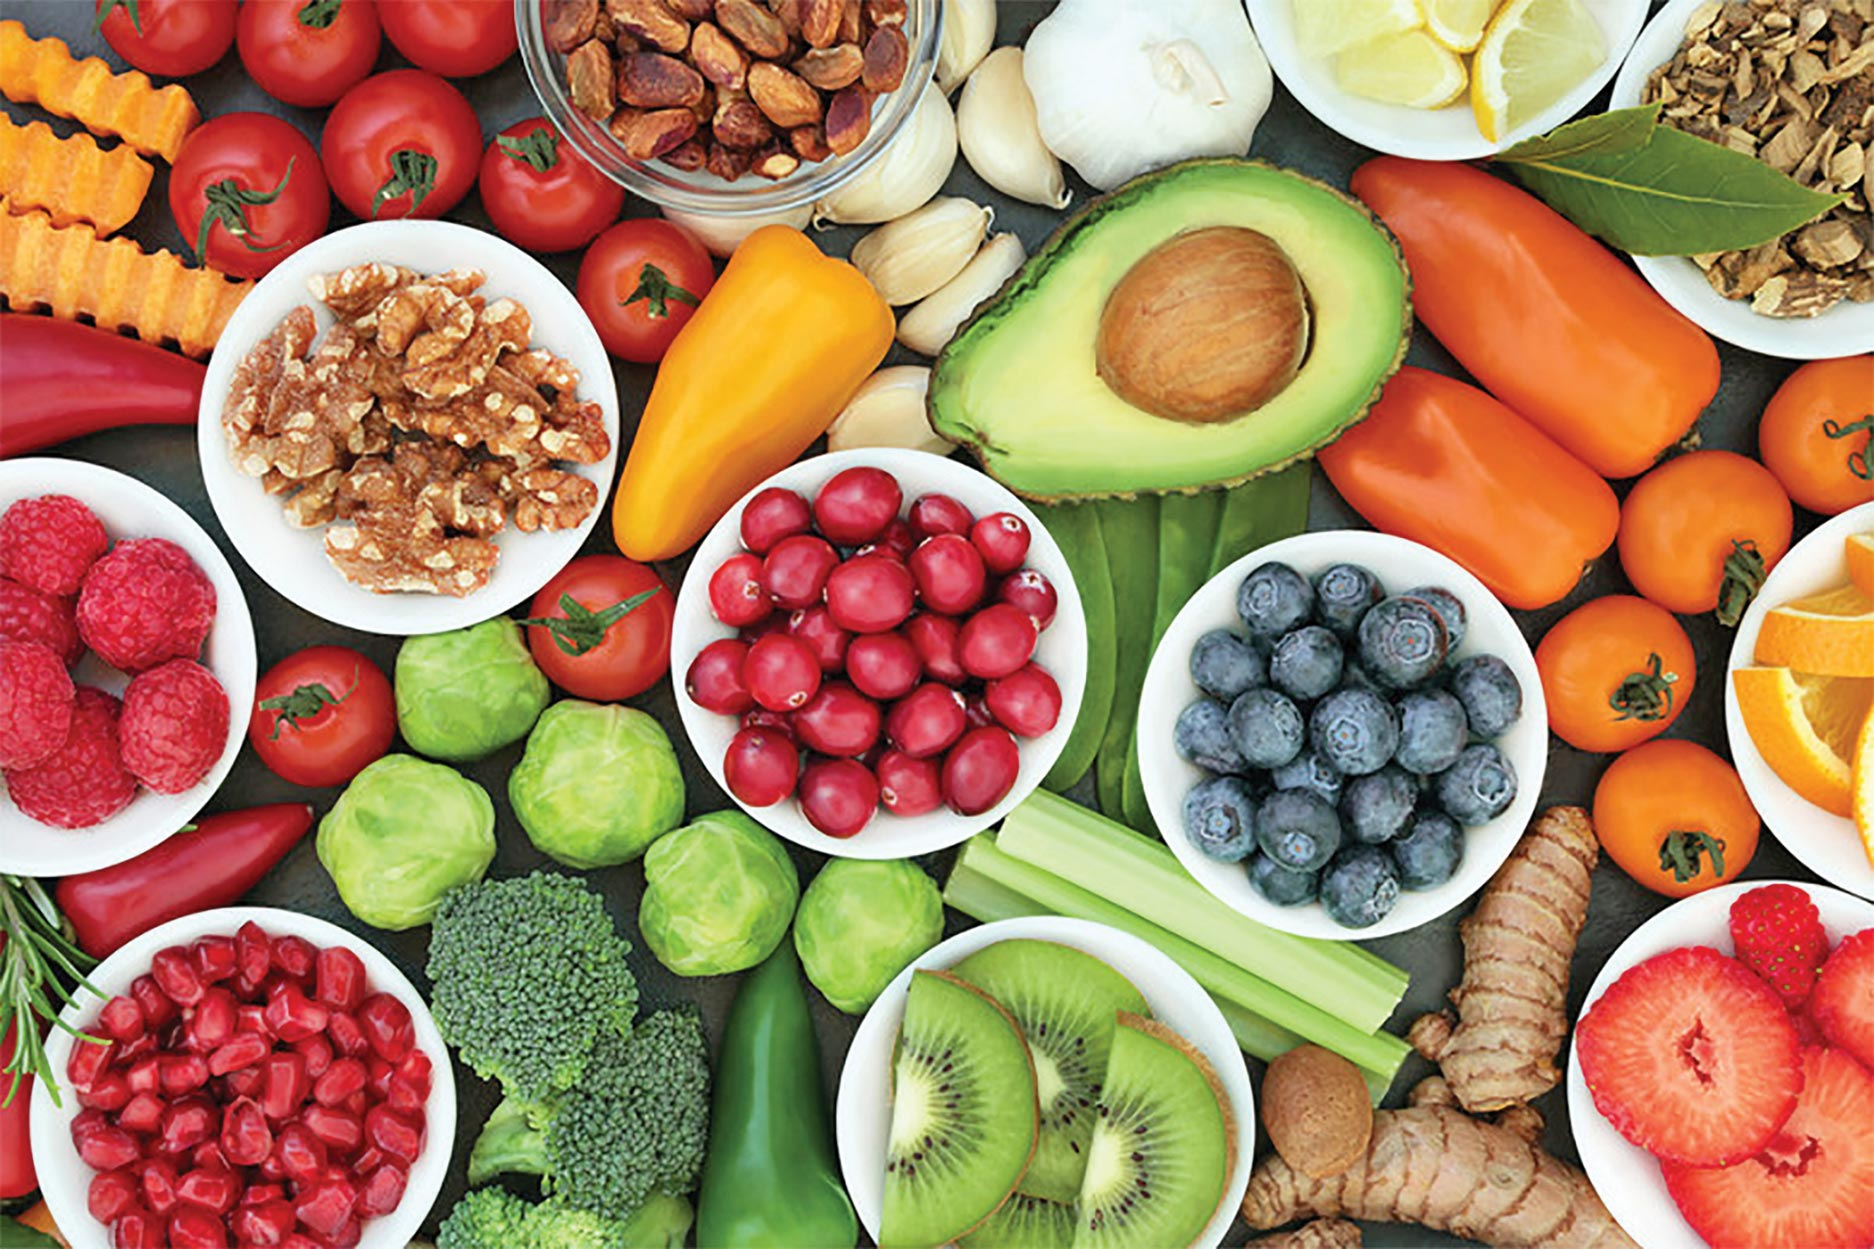 Healthy diet, fitness tips for home | Colorado Springs Military ...